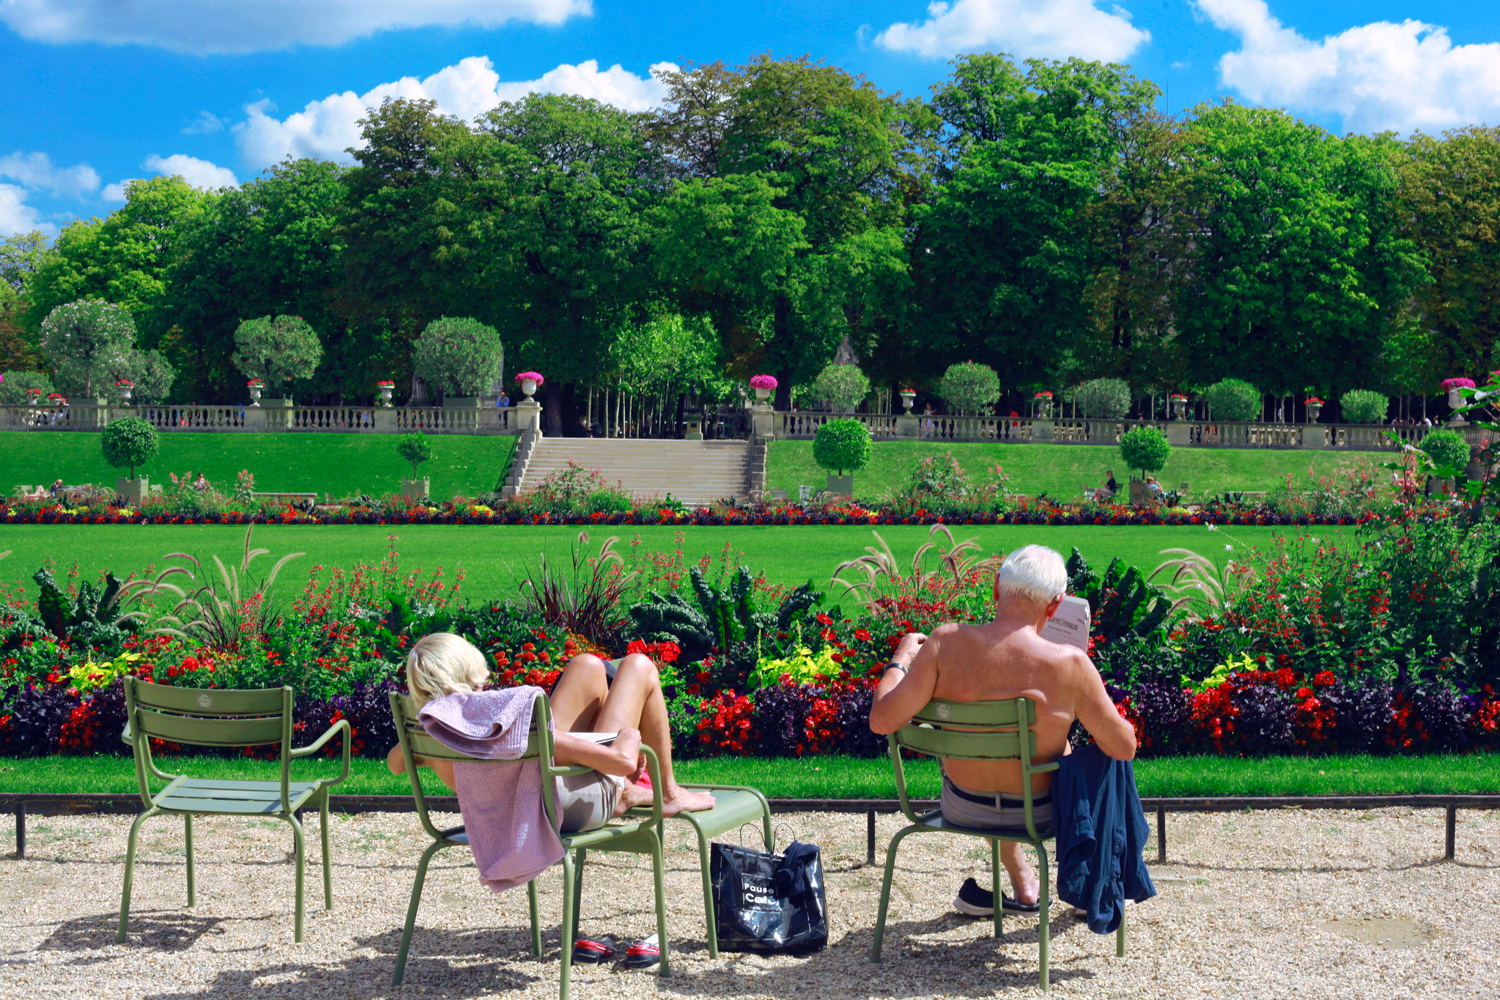 A couple relaxes at Le Jardin du Luxembourg, Paris, France. (Marie-Sophie Tékian/Unsplash)